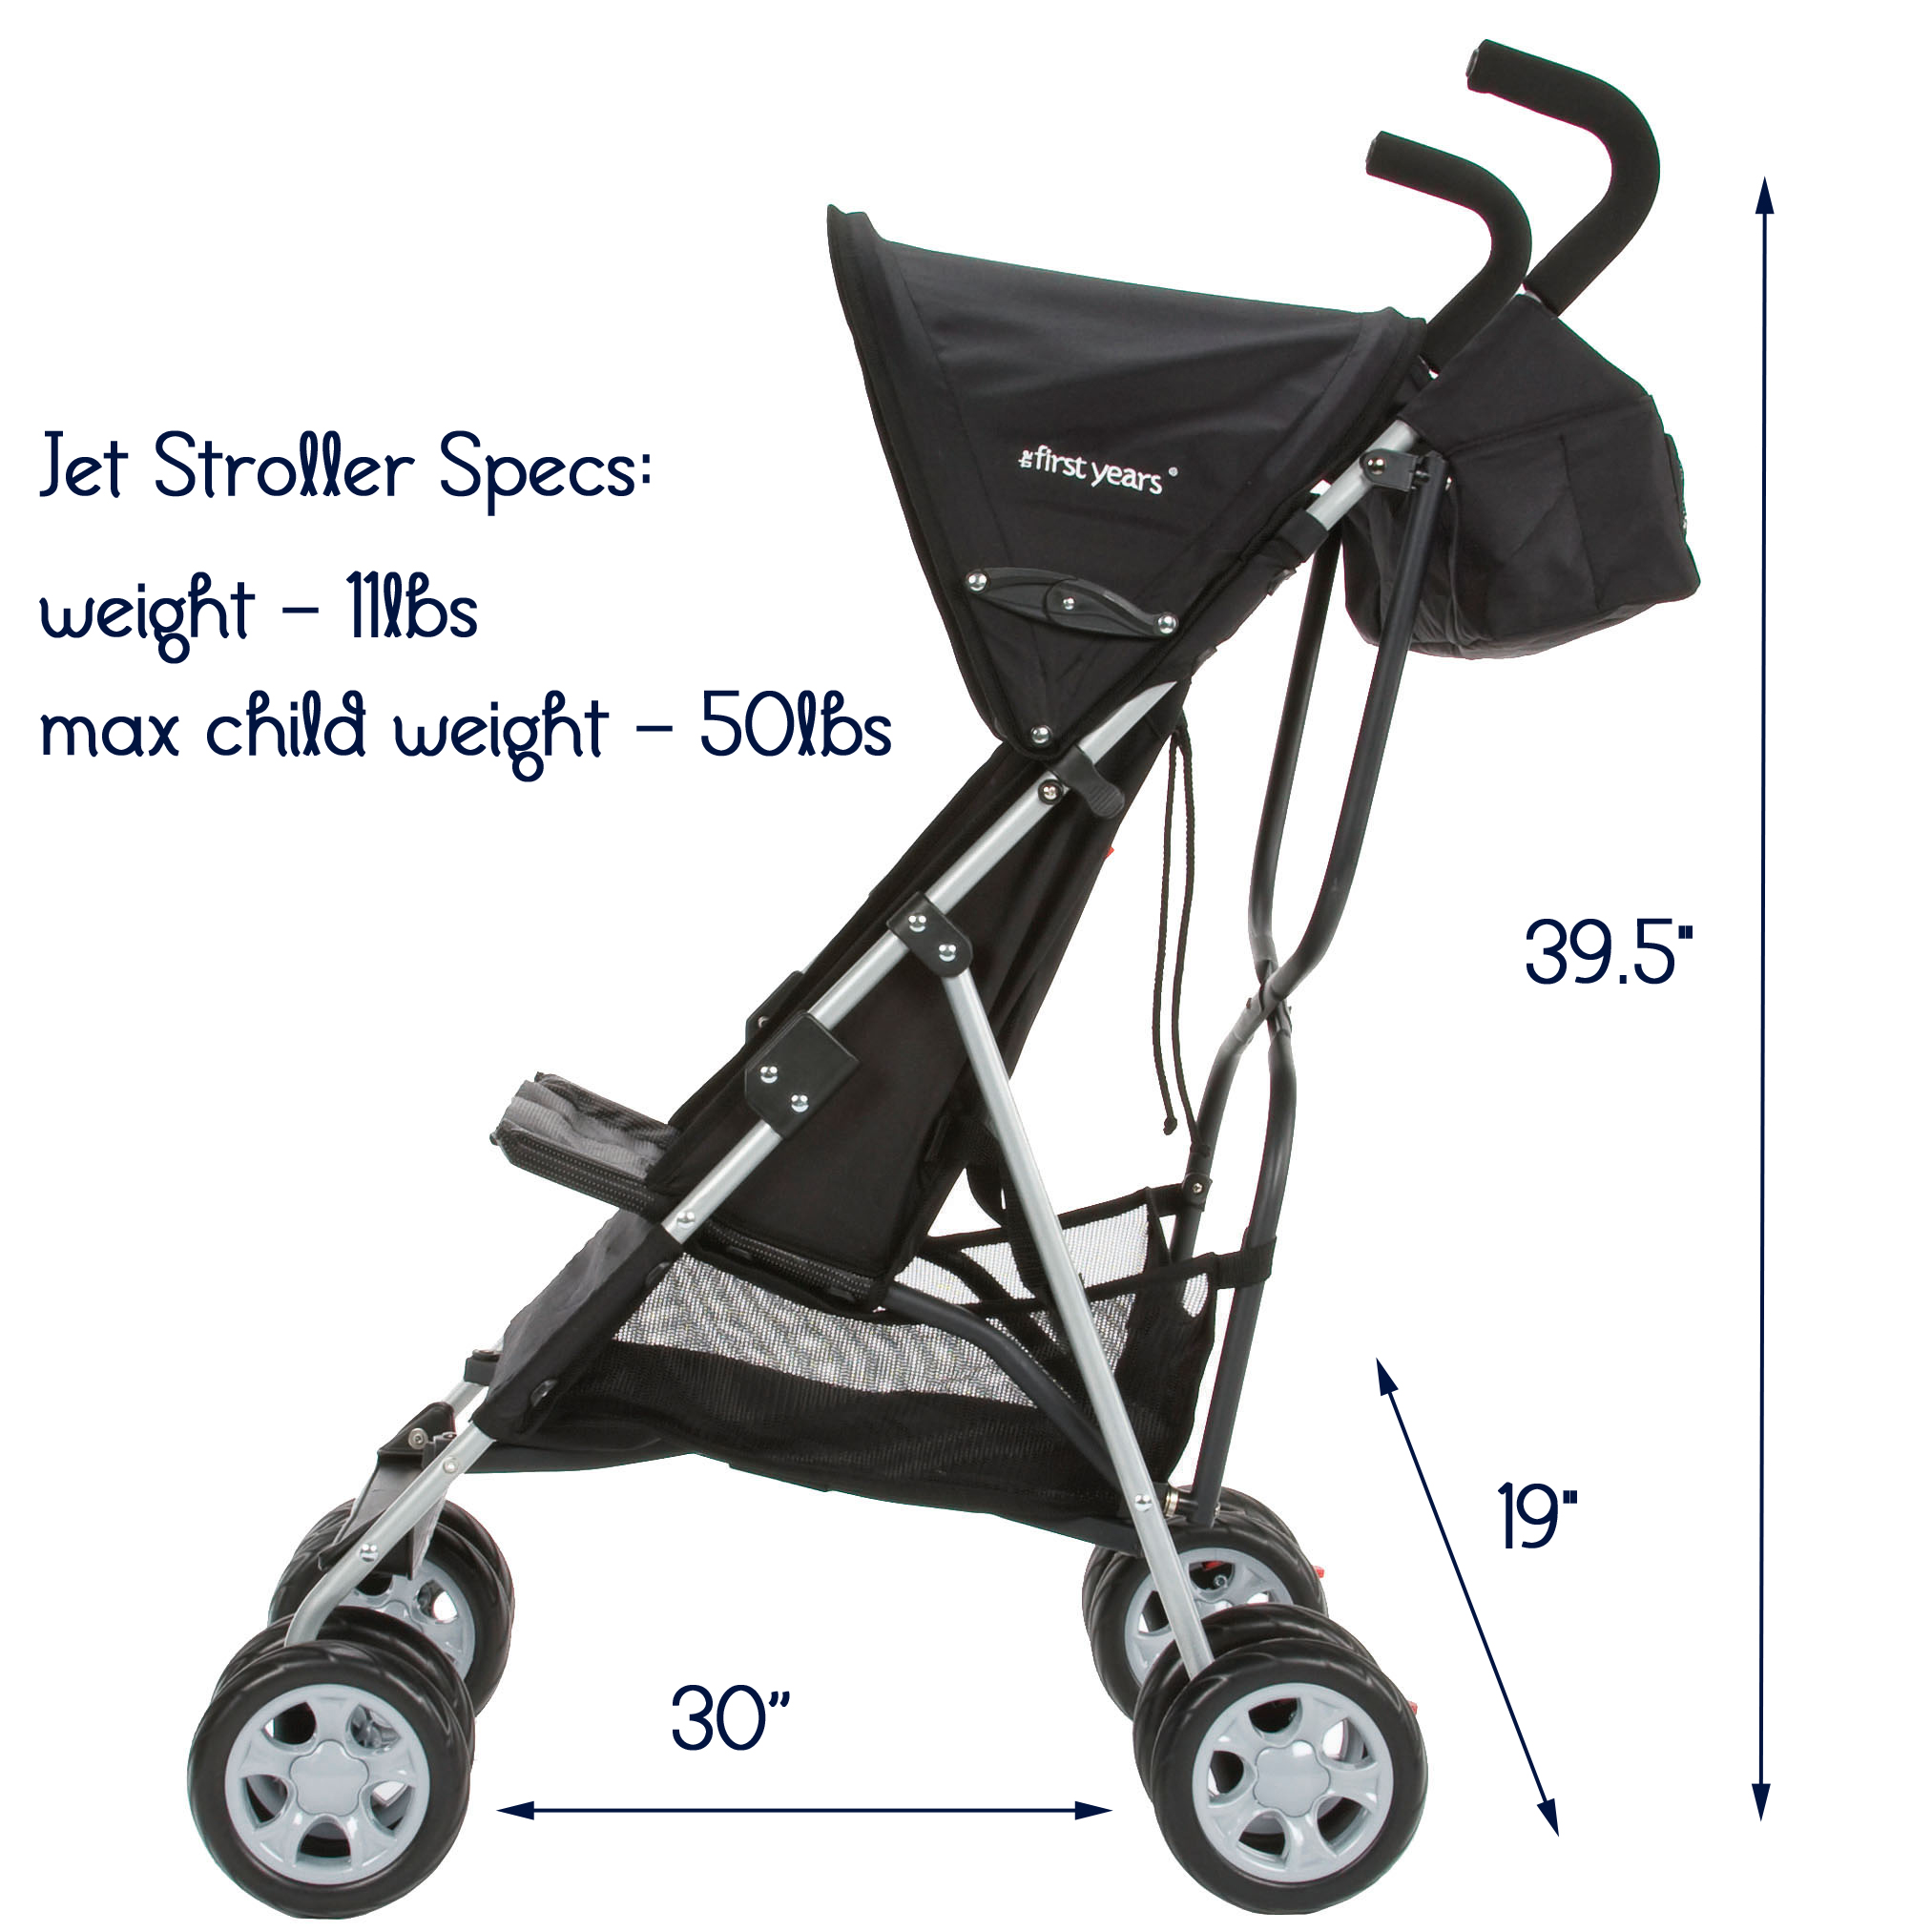 Umbrella Stroller First Years Jet Specs Growing Your Baby